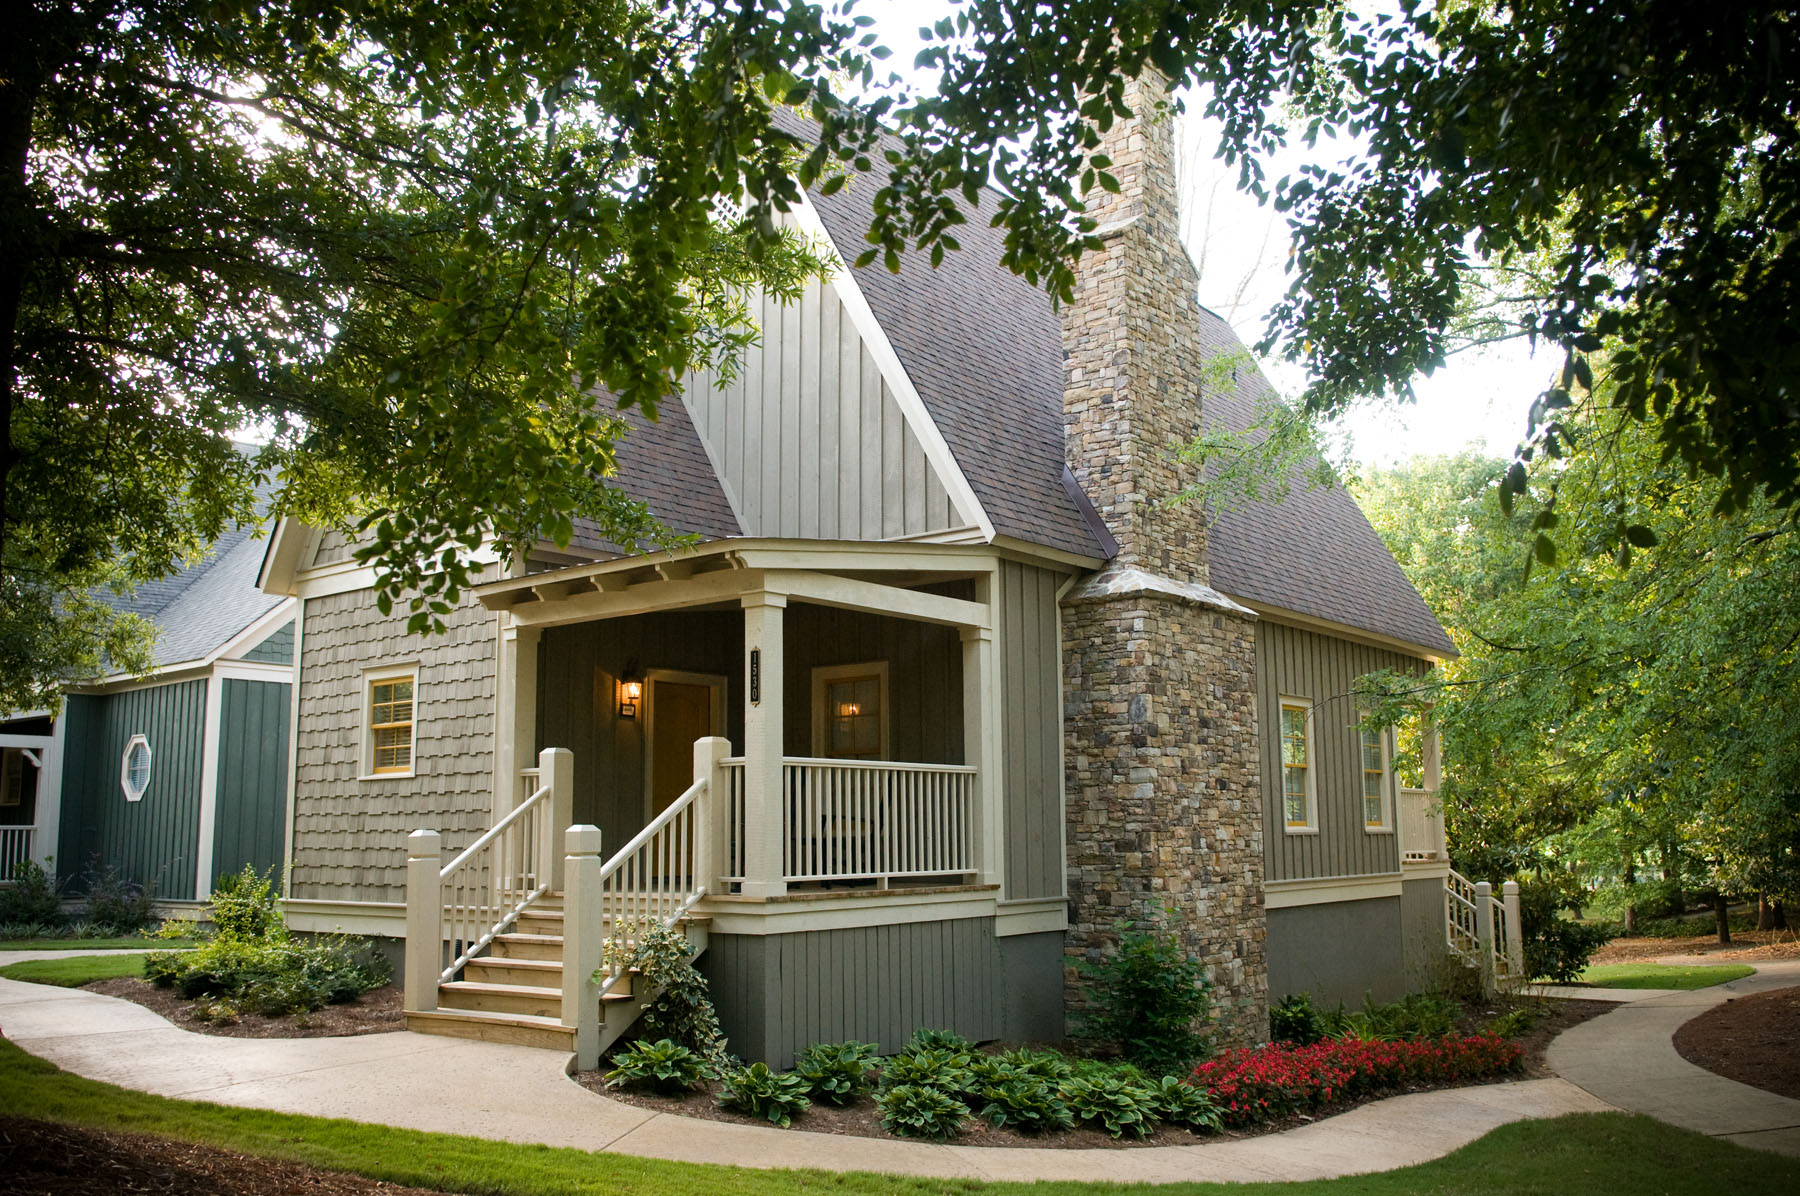 Barnsley gardens resort should be on everyone 39 s most for Compact cottages georgia